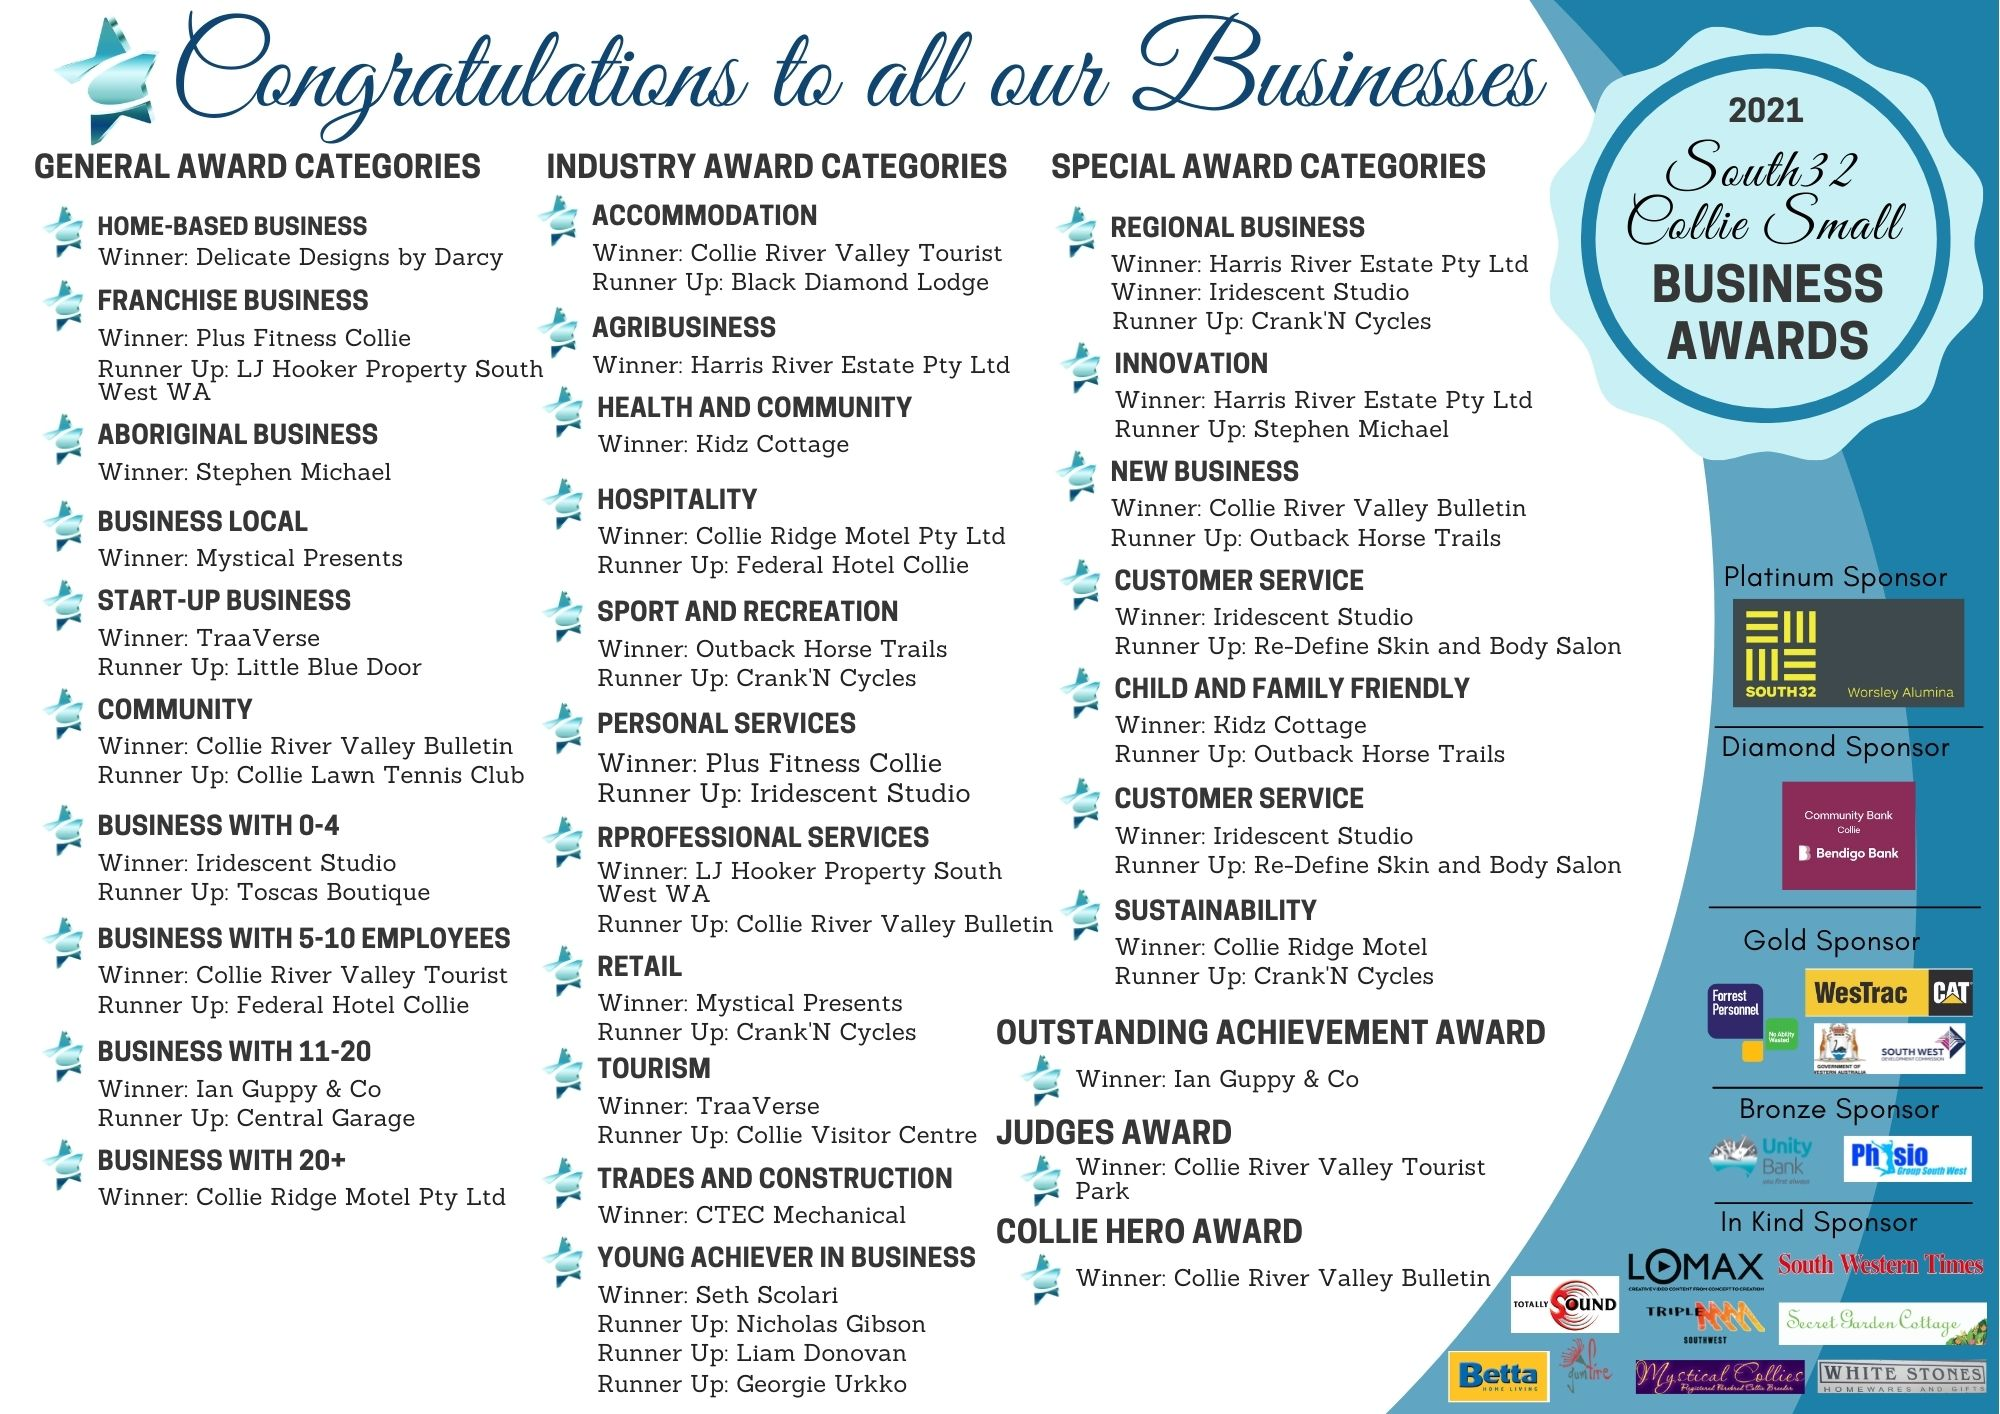 Congratulation to all our businesses